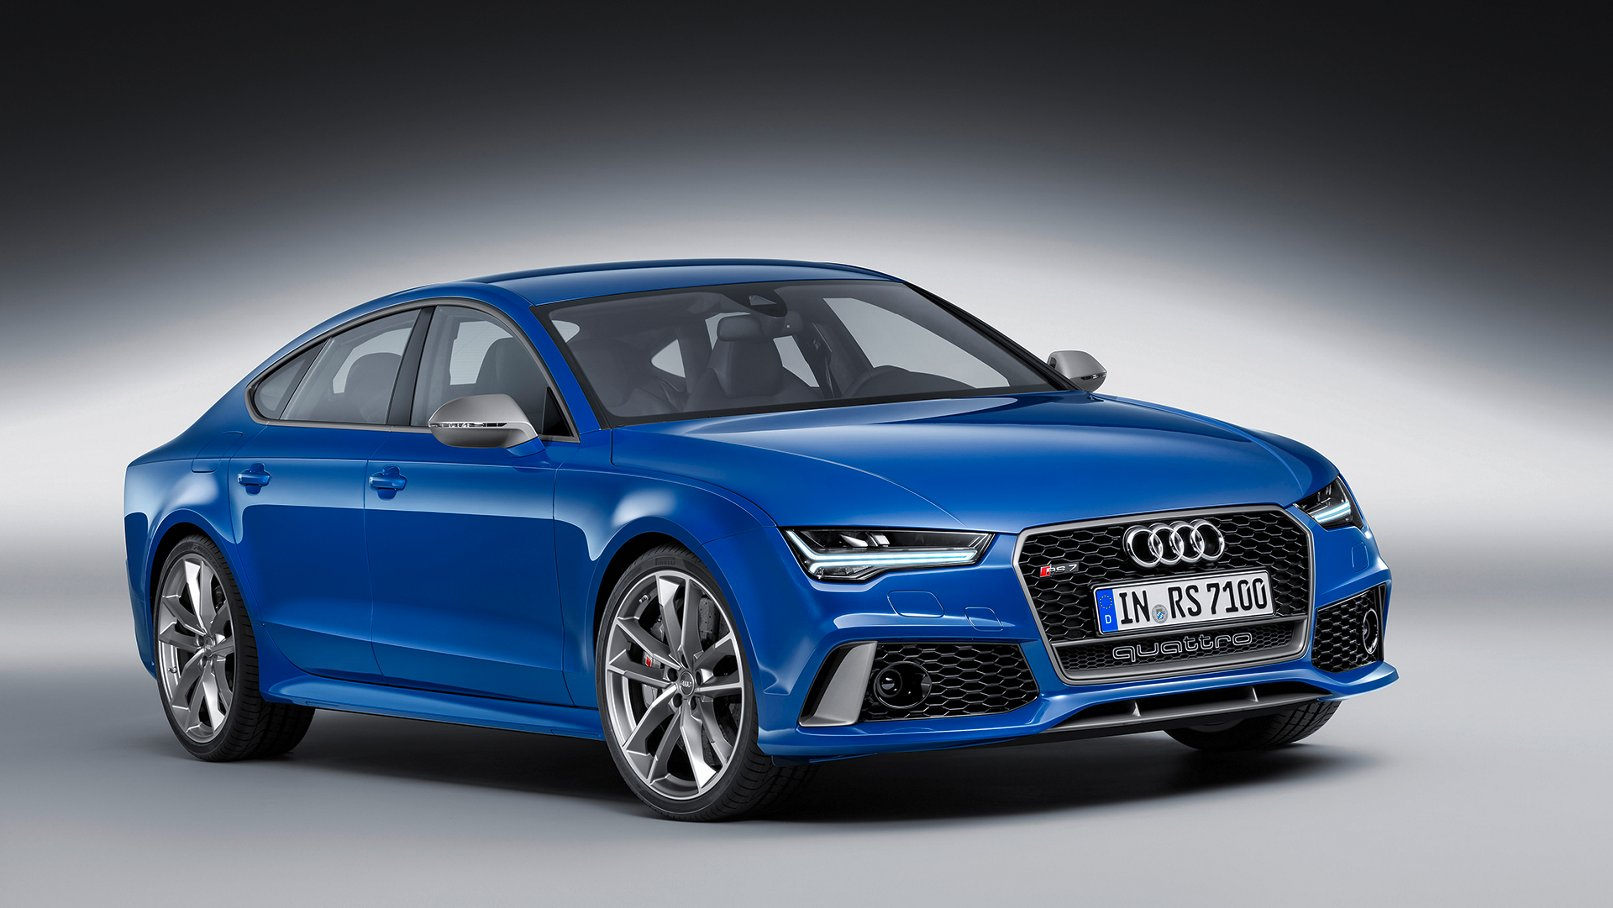 Audi s high octane rs models are rare in the u s compared to other countries but news out of germany suggests that audi is looking to bring a number of